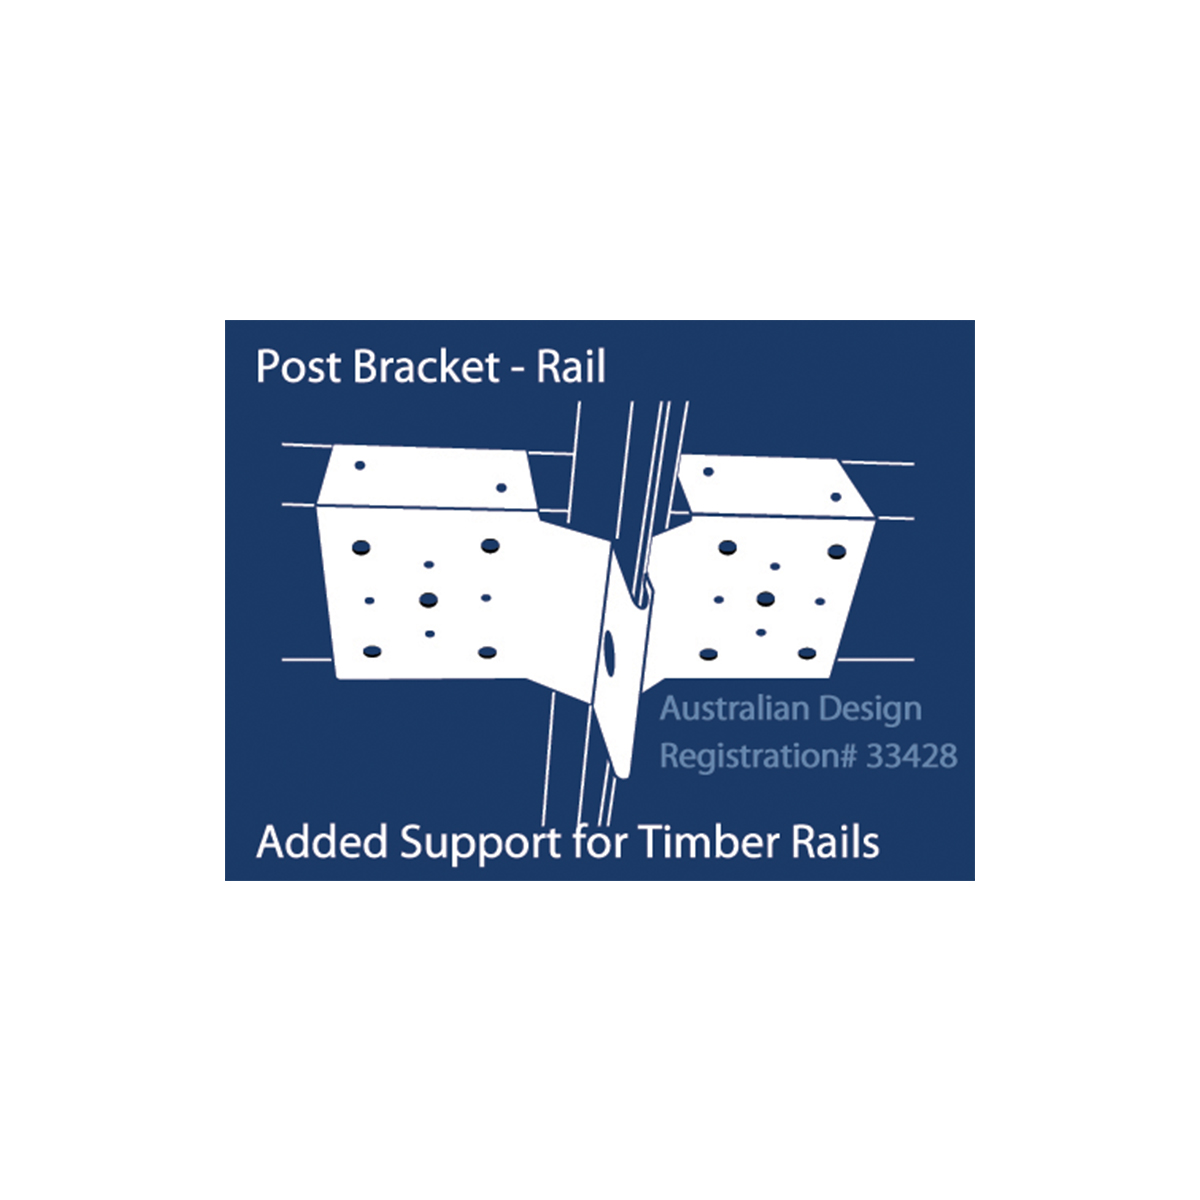 12216 post bracket rail illustration